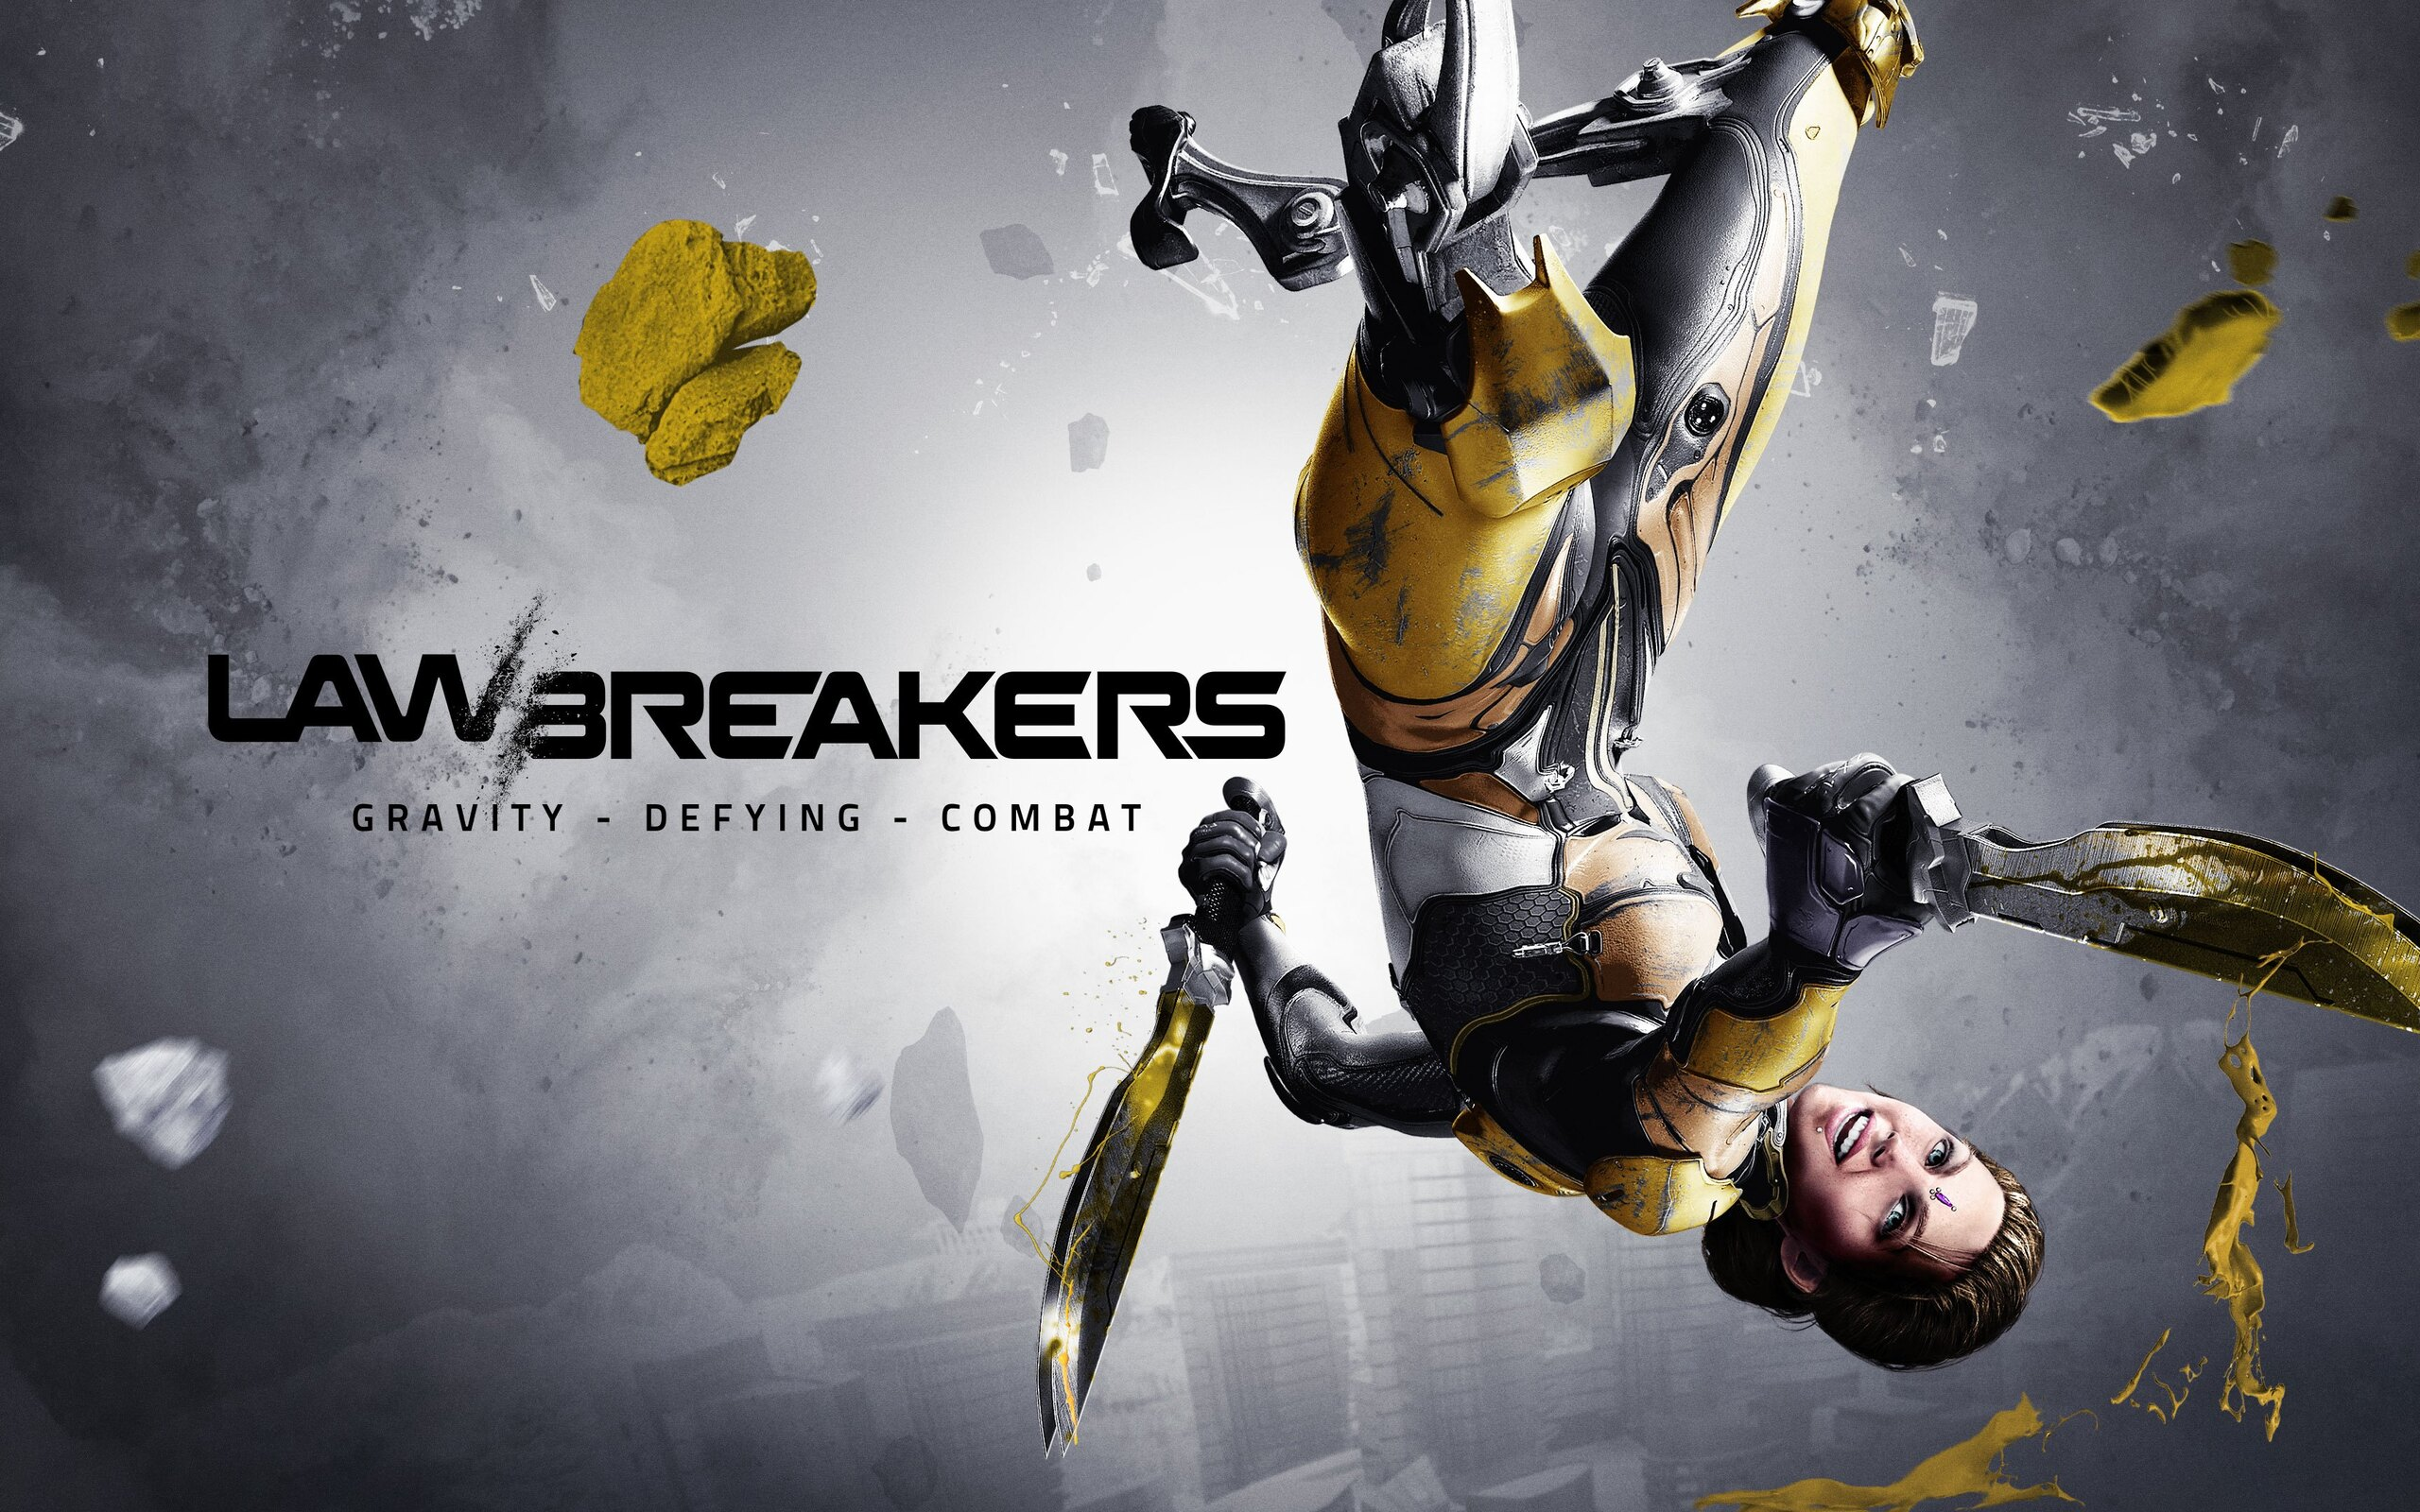 lawbreakers-qj.jpg